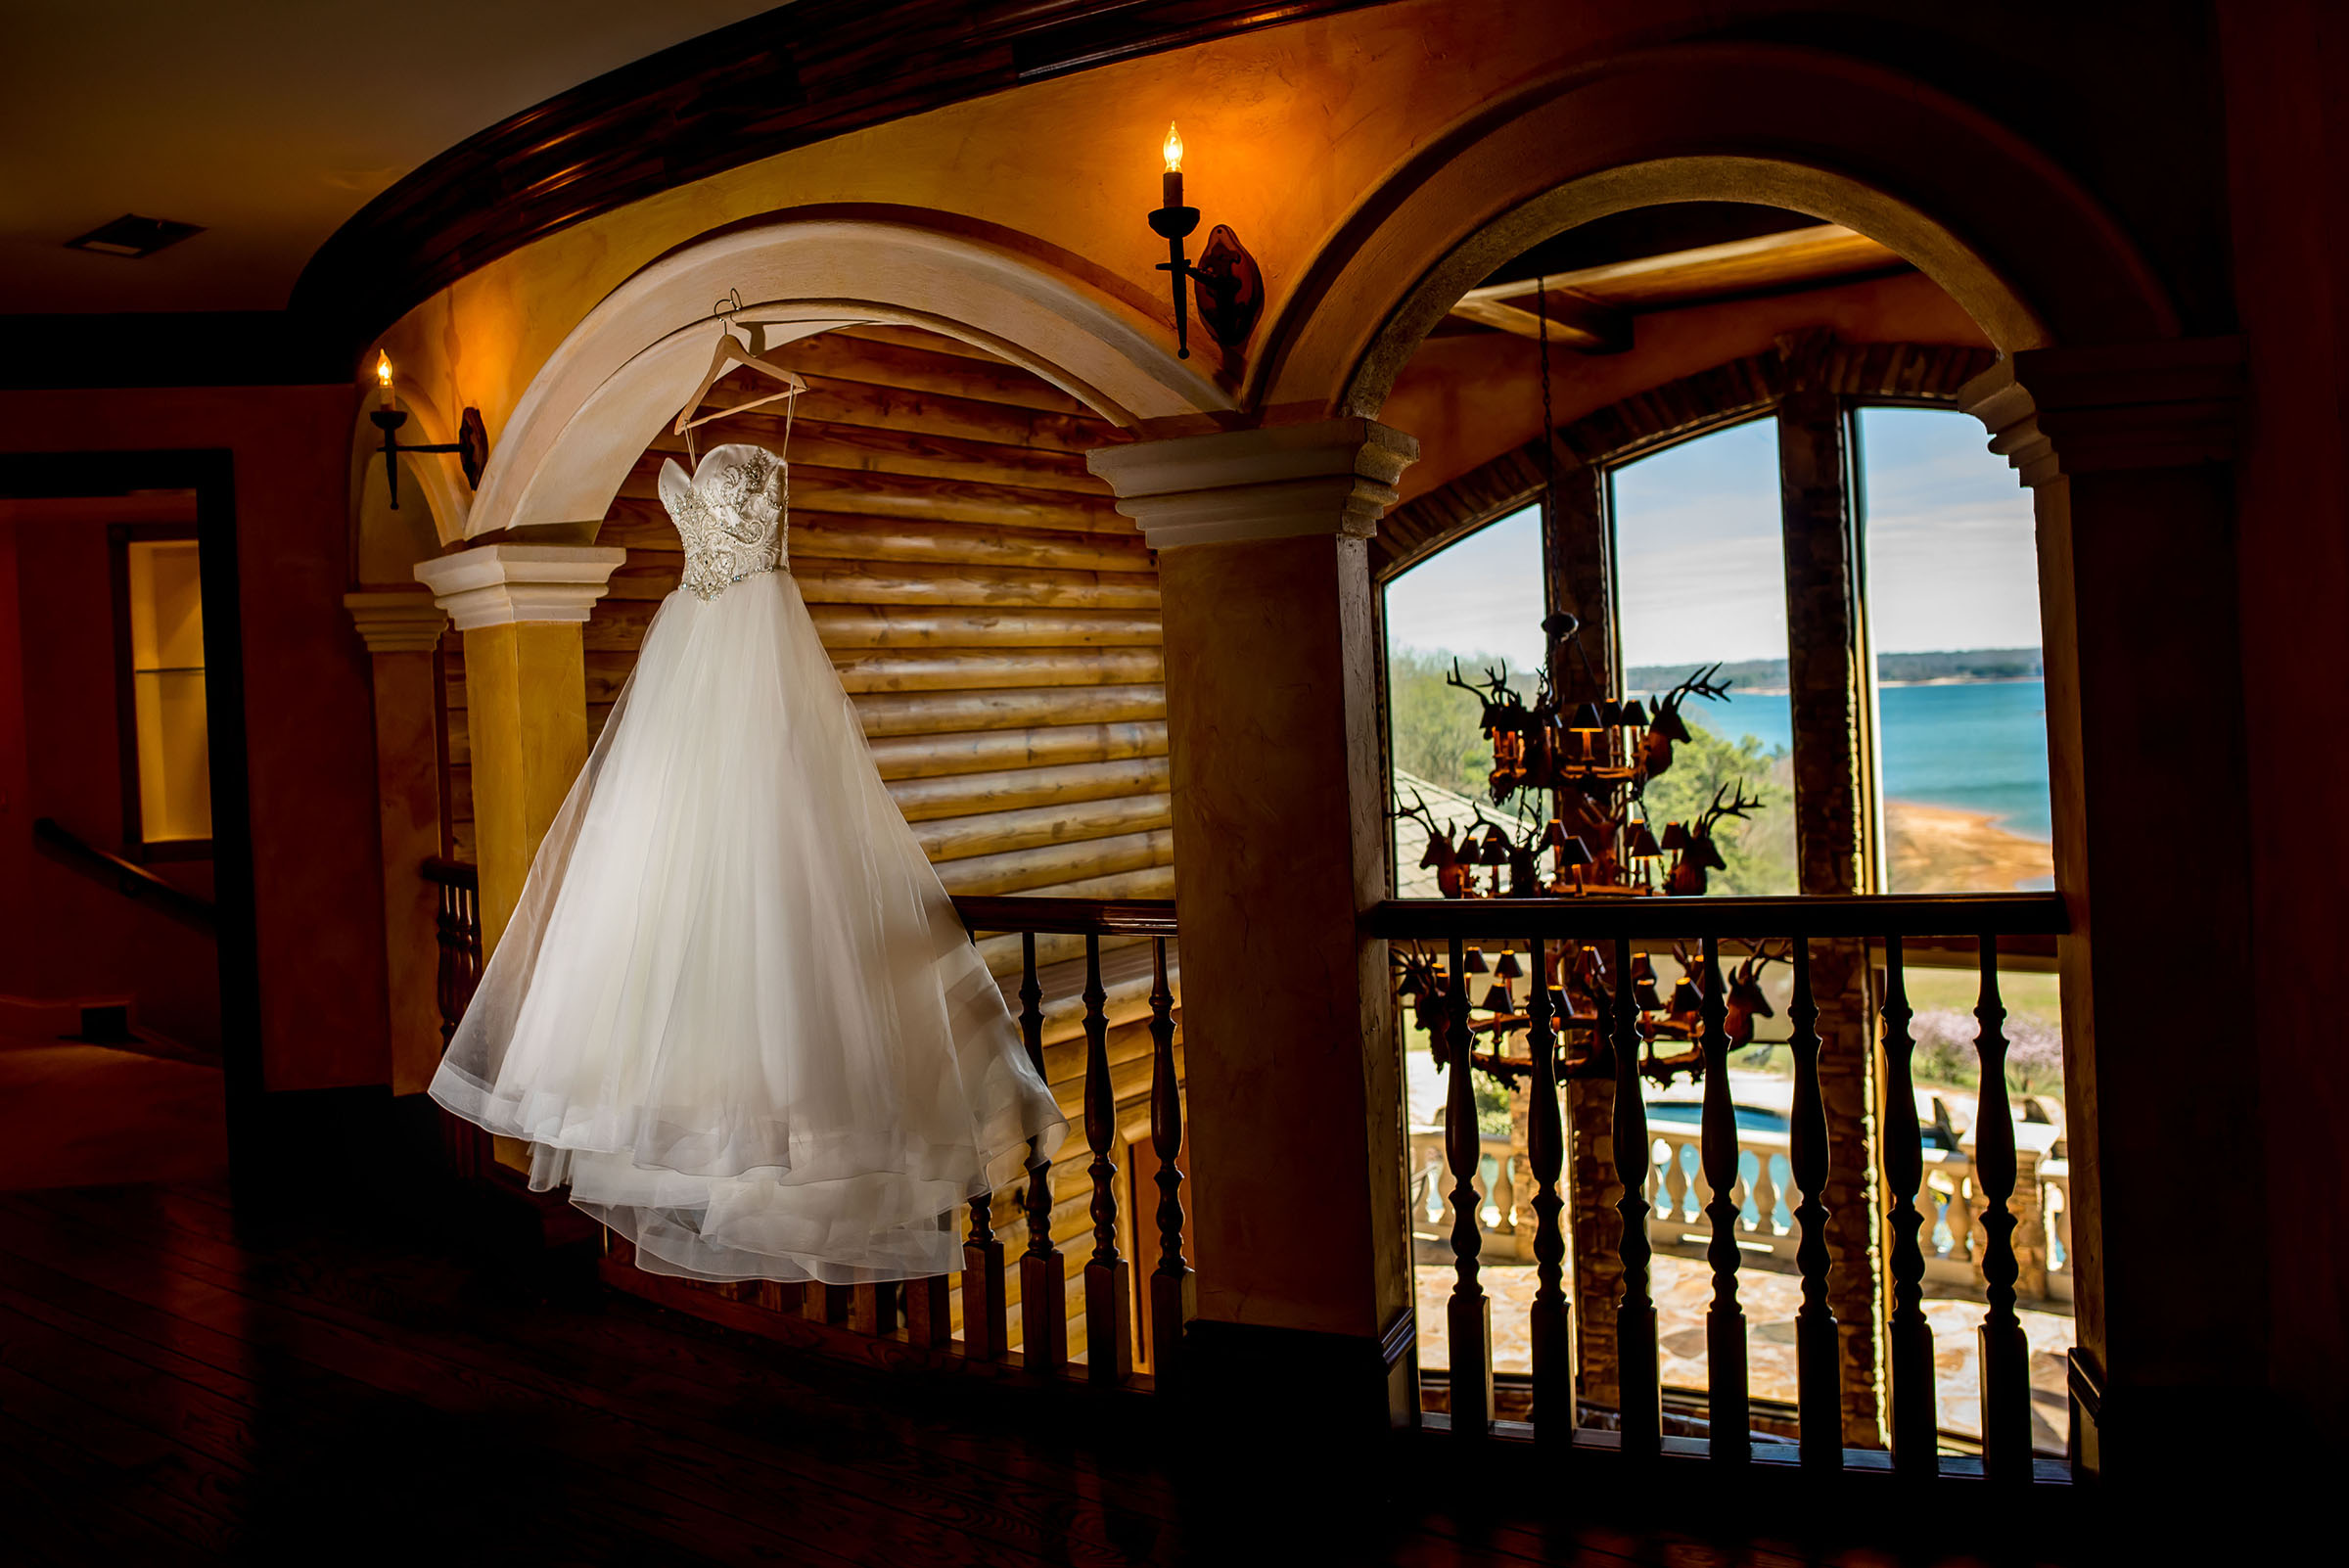 Bridal gown hanging by window with tropical view - photo by Gloria Ruth Photography